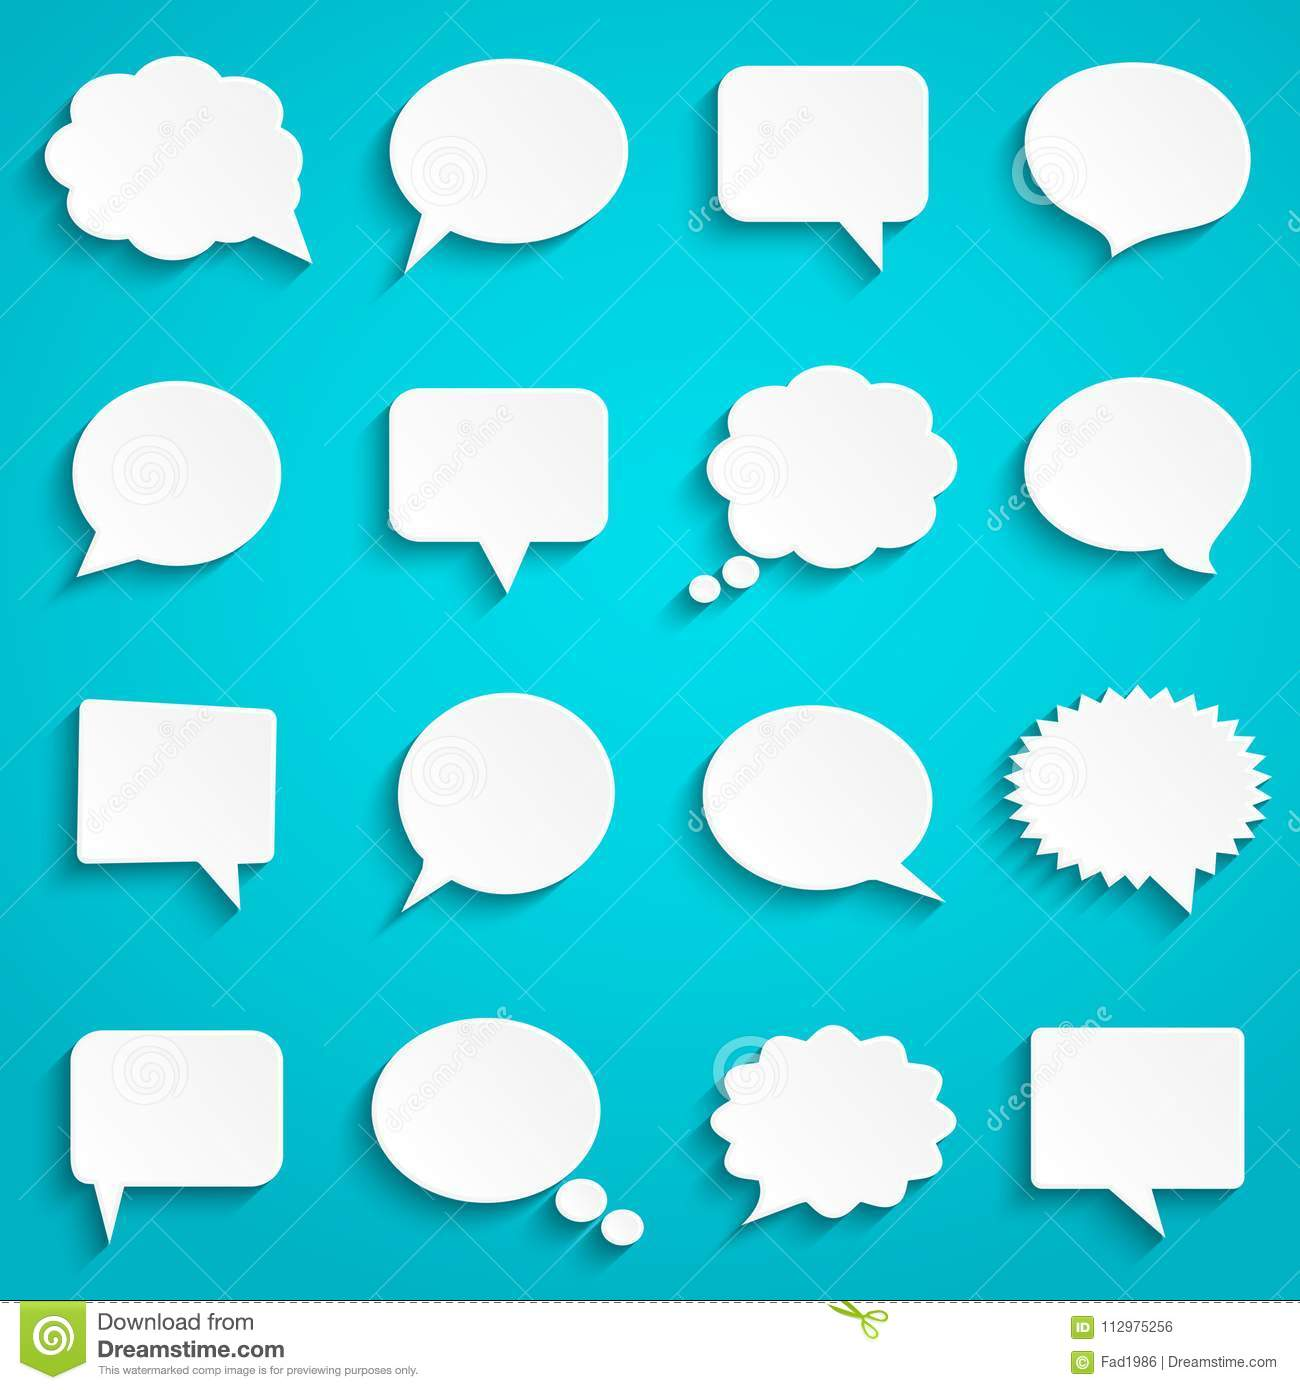 Blank empty paper white speech bubbles